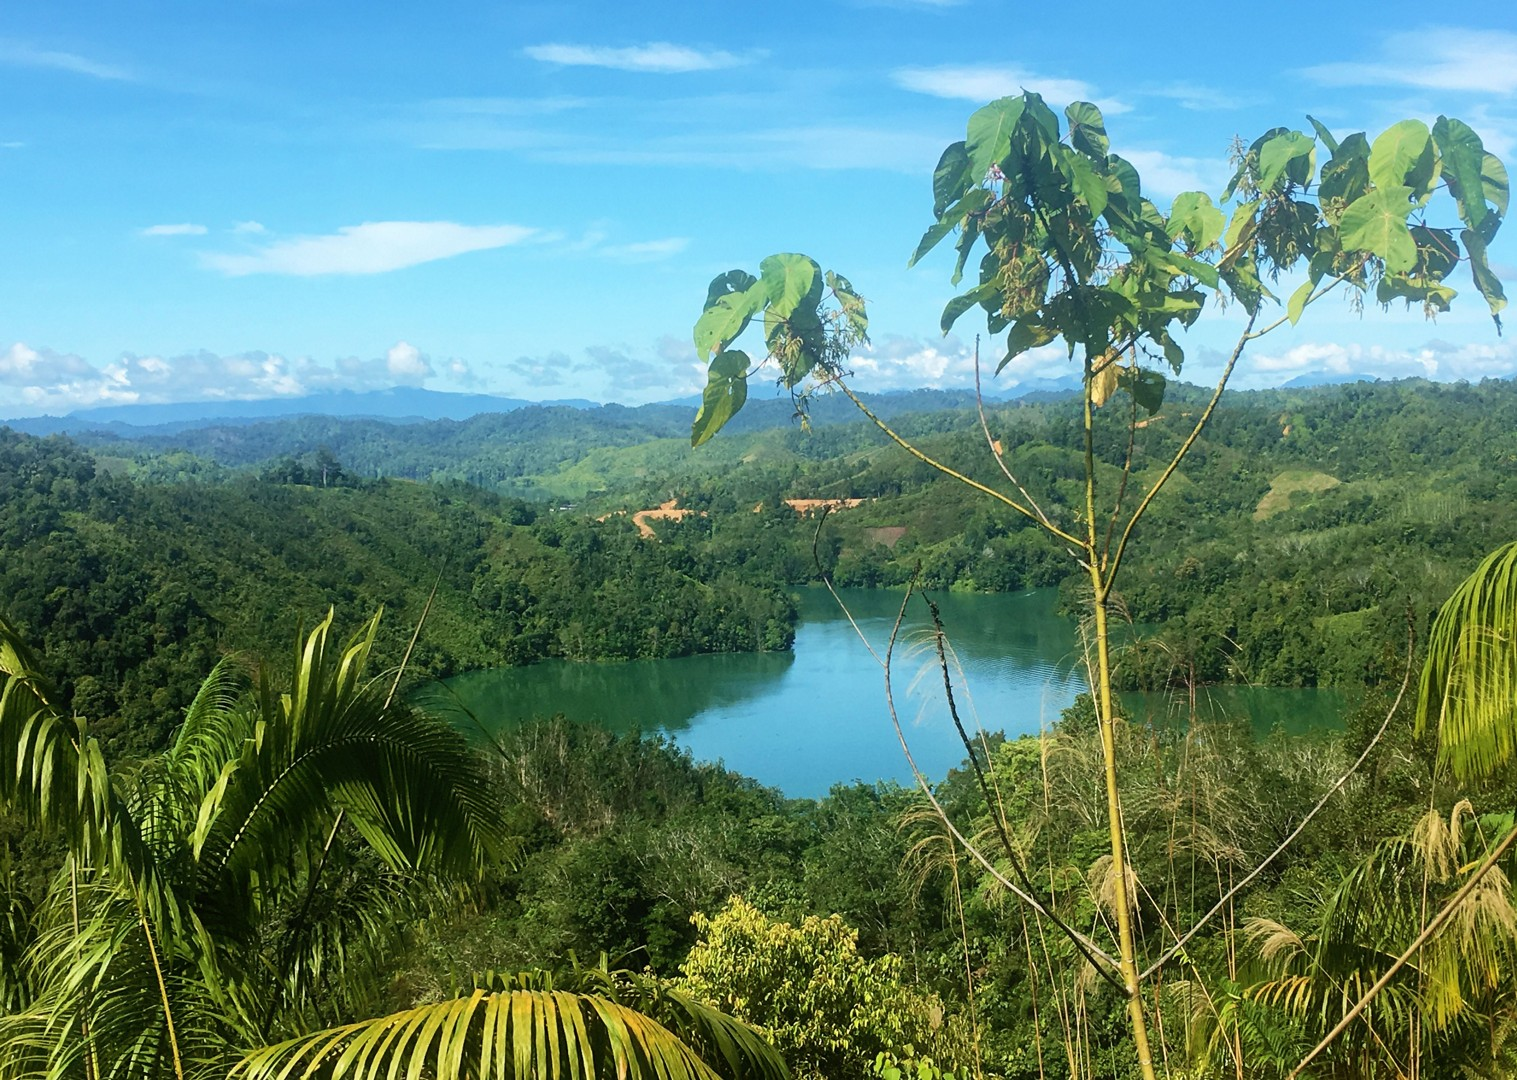 jungle-view-borneo-trip-by-bike-guided-cycling-holiday.jpg - NEW! Borneo - Sarawak Jungle Adventures - Family Cycling